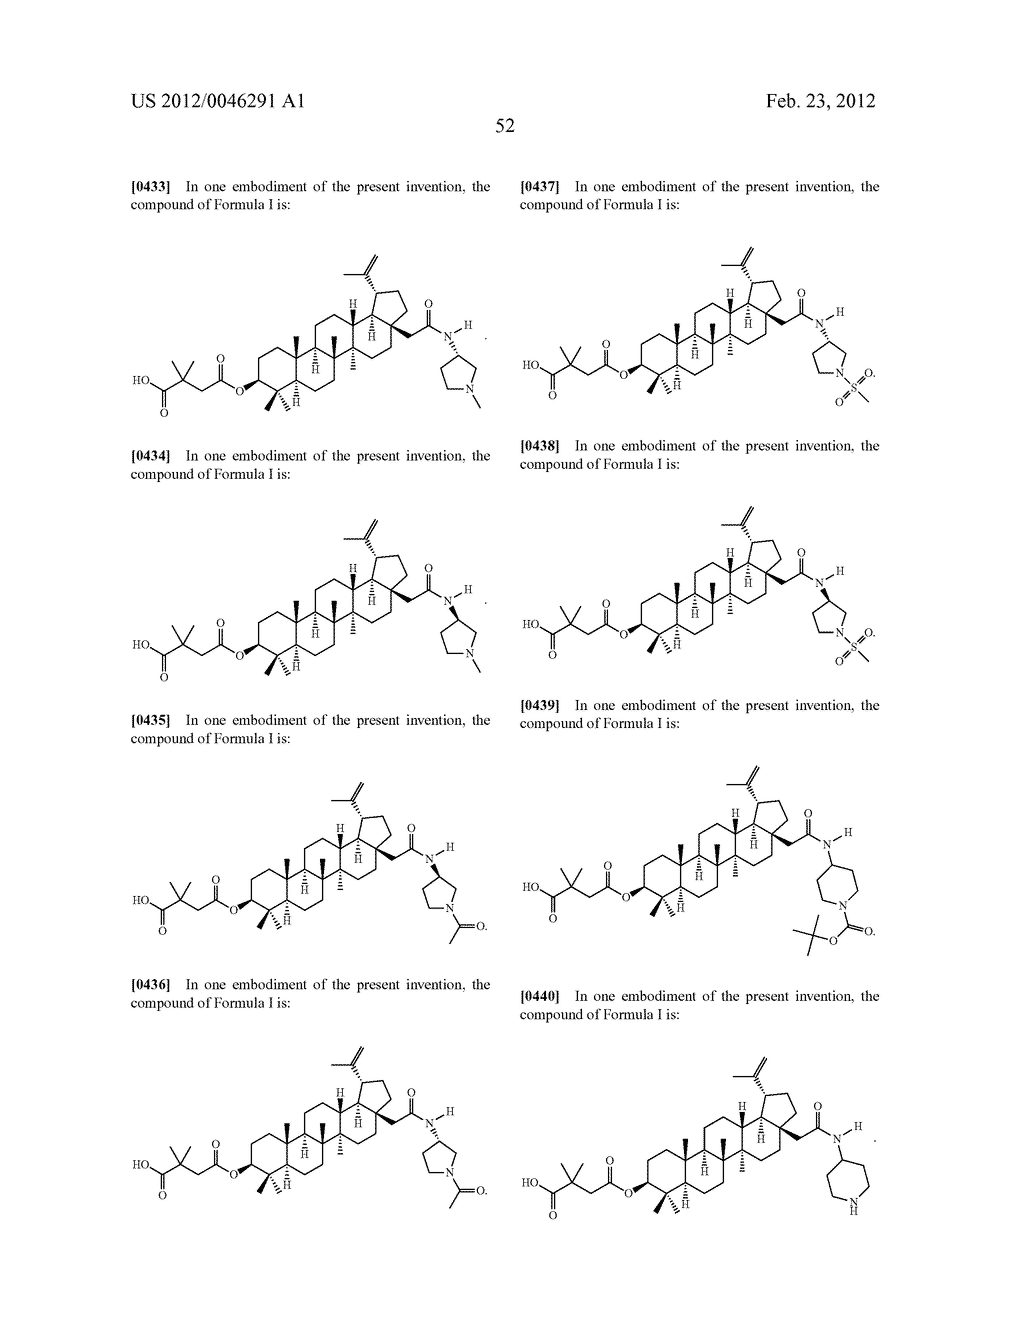 Extended Triterpene Derivatives - diagram, schematic, and image 54